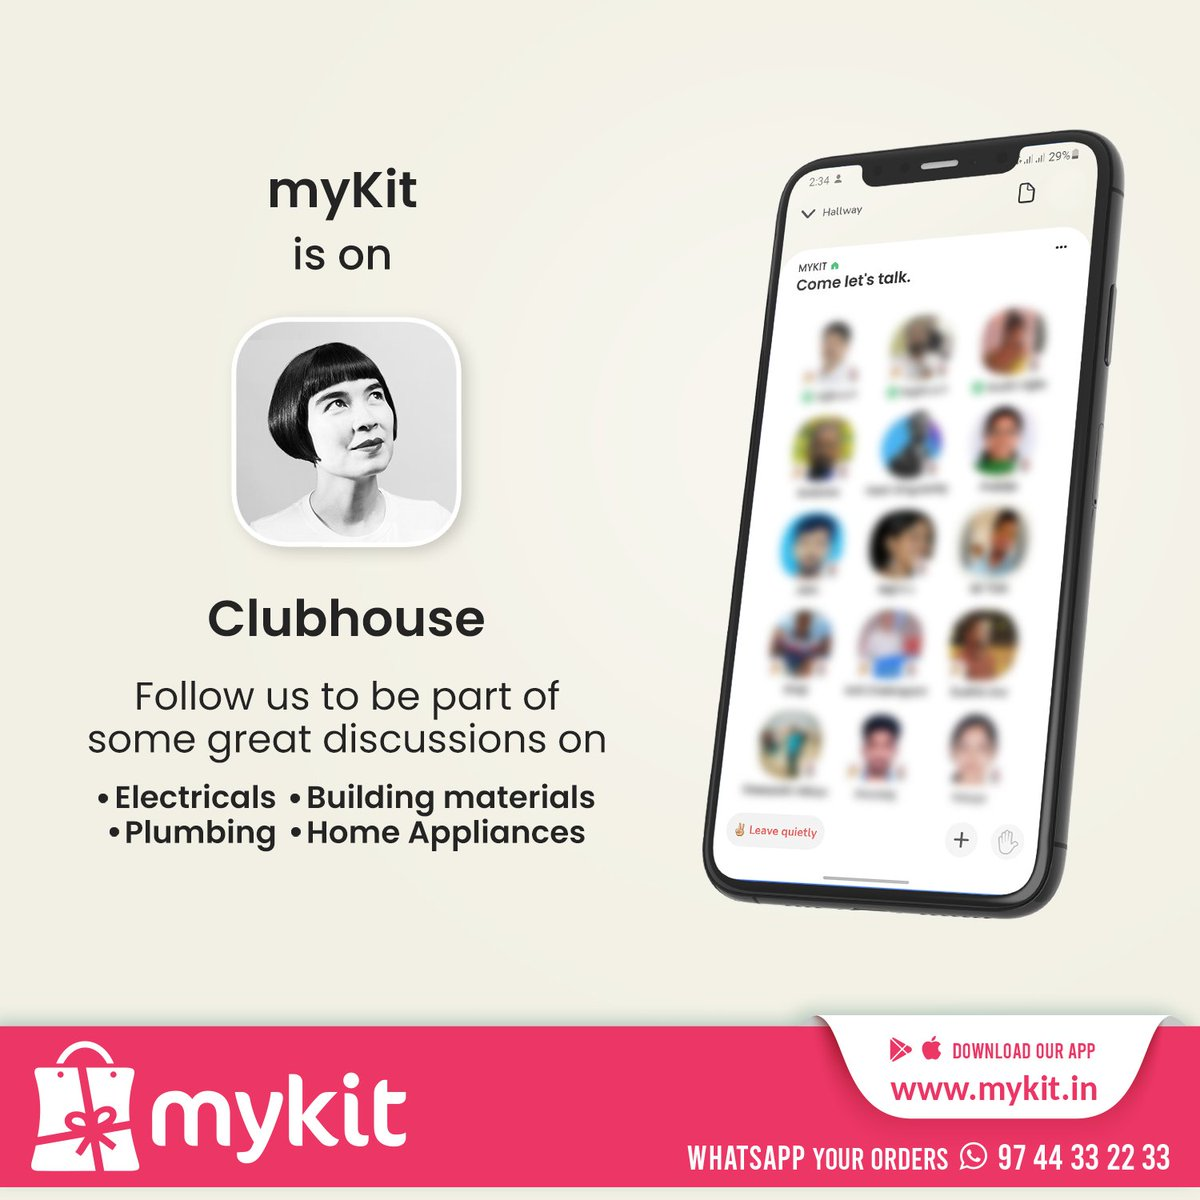 We are in Clubhouse now.  Follow us to be part of some great discussions on  *Electrical *Building materials *Plumbing *Home appliances  https://t.co/L65HNolwDZ #mykit #mykitcart #clubhouse #electricals #plumbing #buildingmaterial #homeappliances  #brandyourhome #kannur #kerala https://t.co/CXXgMcFSgT